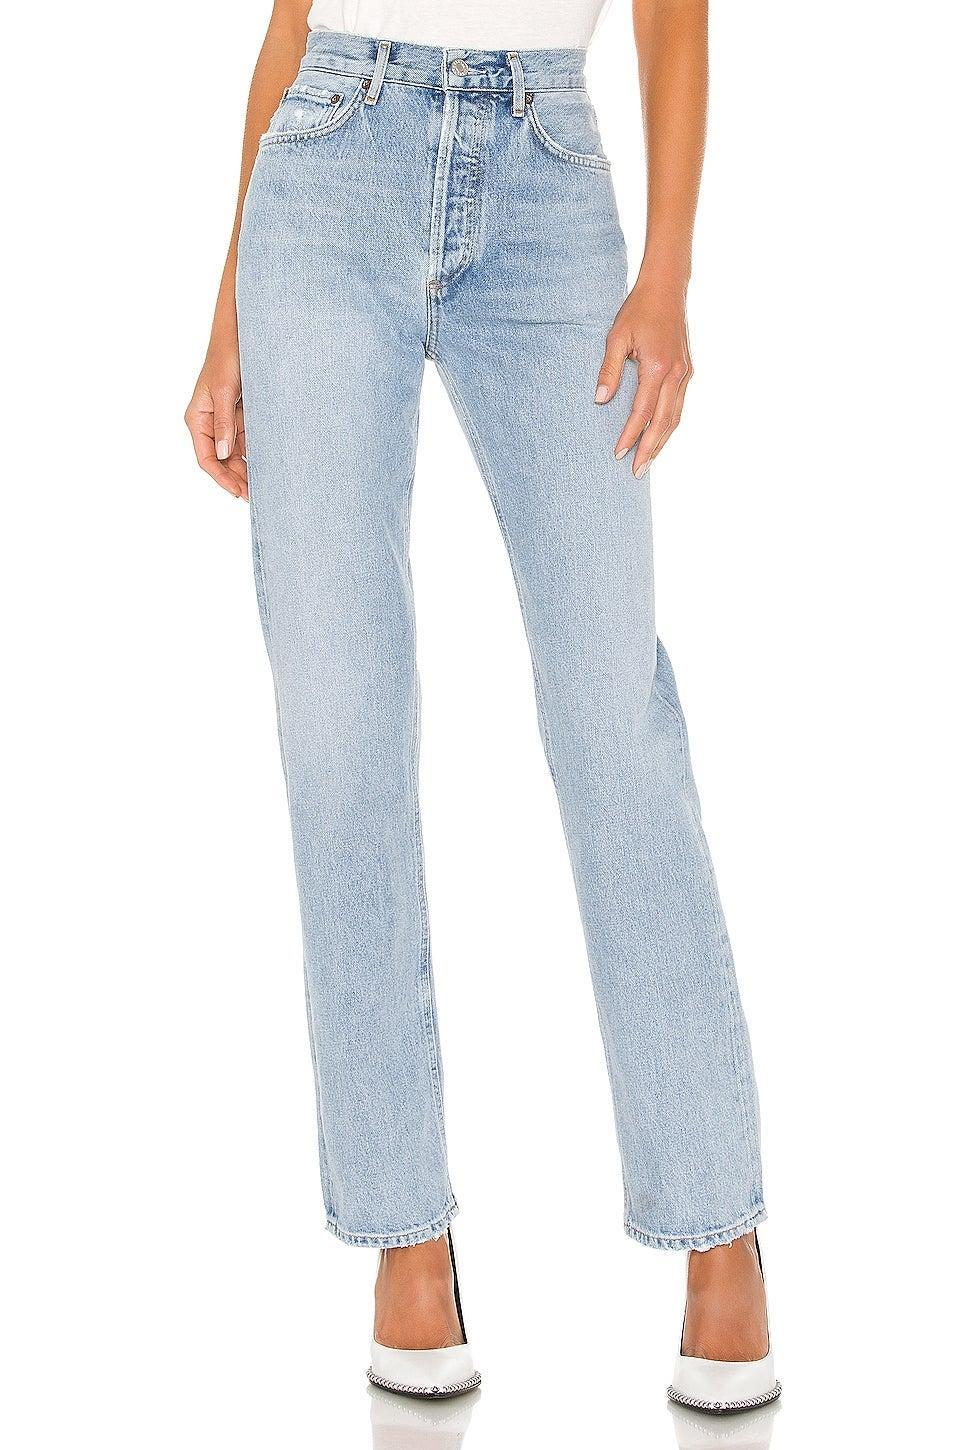 """<h2>AGOLDE Lana Straight Jean</h2><br><em><strong>The Compliment Magnet<br></strong></em><br>AGOLDE is a premium denim label with an undeniable contemporary-cool appeal. This best-selling pair on Revolve is no exception with reviewers raving about the ultra-relaxed fit that offers ample styling opportunities. Because of the looser silhouette, however, many suggest sizing down for a better fit. <br><br><strong>The Hype: </strong>4.5 out of 5 stars; 114 reviews on Revolve.com<br><br><strong>What They're Saying</strong>: """"Super cool relaxed look. Have received countless of compliments from this pair of jeans and have recommended them to my friends. Though pricier than hat if usually pay, I believe these will last me a long time and have a timeless look."""" — Nat, Revolve.com reviewer<br><em><br>Shop <strong><a href=""""https://www.revolve.com/agolde-lana-straight/dp/AGOL-WJ253/"""" rel=""""nofollow noopener"""" target=""""_blank"""" data-ylk=""""slk:Revolve.com"""" class=""""link rapid-noclick-resp"""">Revolve.com</a></strong></em><br><br><strong>Agolde</strong> Lana Straight, $, available at <a href=""""https://go.skimresources.com/?id=30283X879131&url=https%3A%2F%2Fwww.revolve.com%2Fagolde-lana-straight%2Fdp%2FAGOL-WJ253%2F"""" rel=""""nofollow noopener"""" target=""""_blank"""" data-ylk=""""slk:Revolve"""" class=""""link rapid-noclick-resp"""">Revolve</a>"""